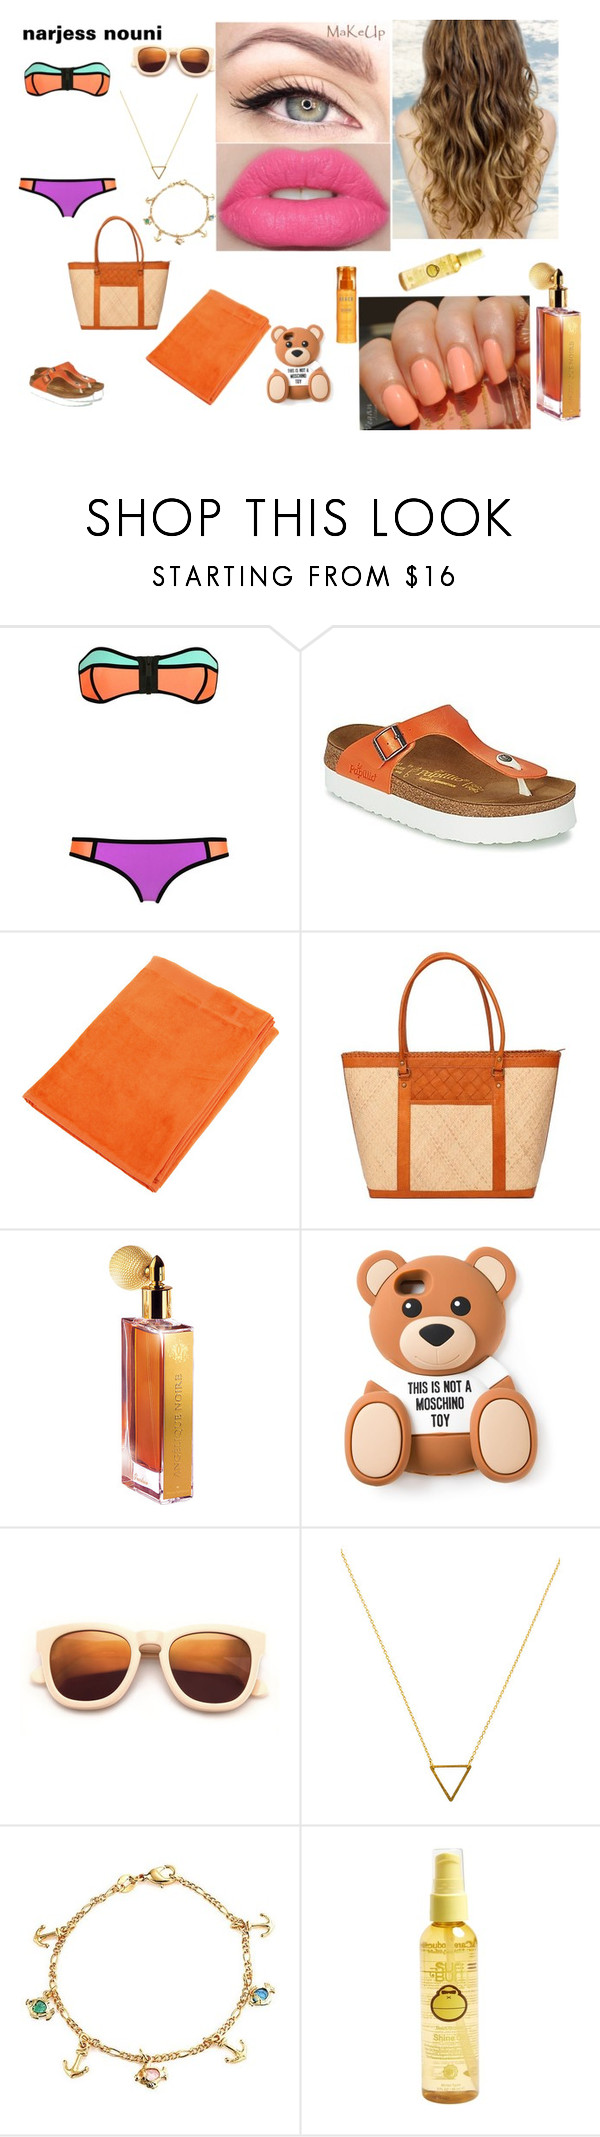 """""""Sans titre #303"""" by narjessnouni ❤ liked on Polyvore featuring Amira, Papillio, HUGO, TLC&you, Guerlain, Moschino, Wildfox, Wanderlust + Co, Bling Jewelry and Sun Bum"""